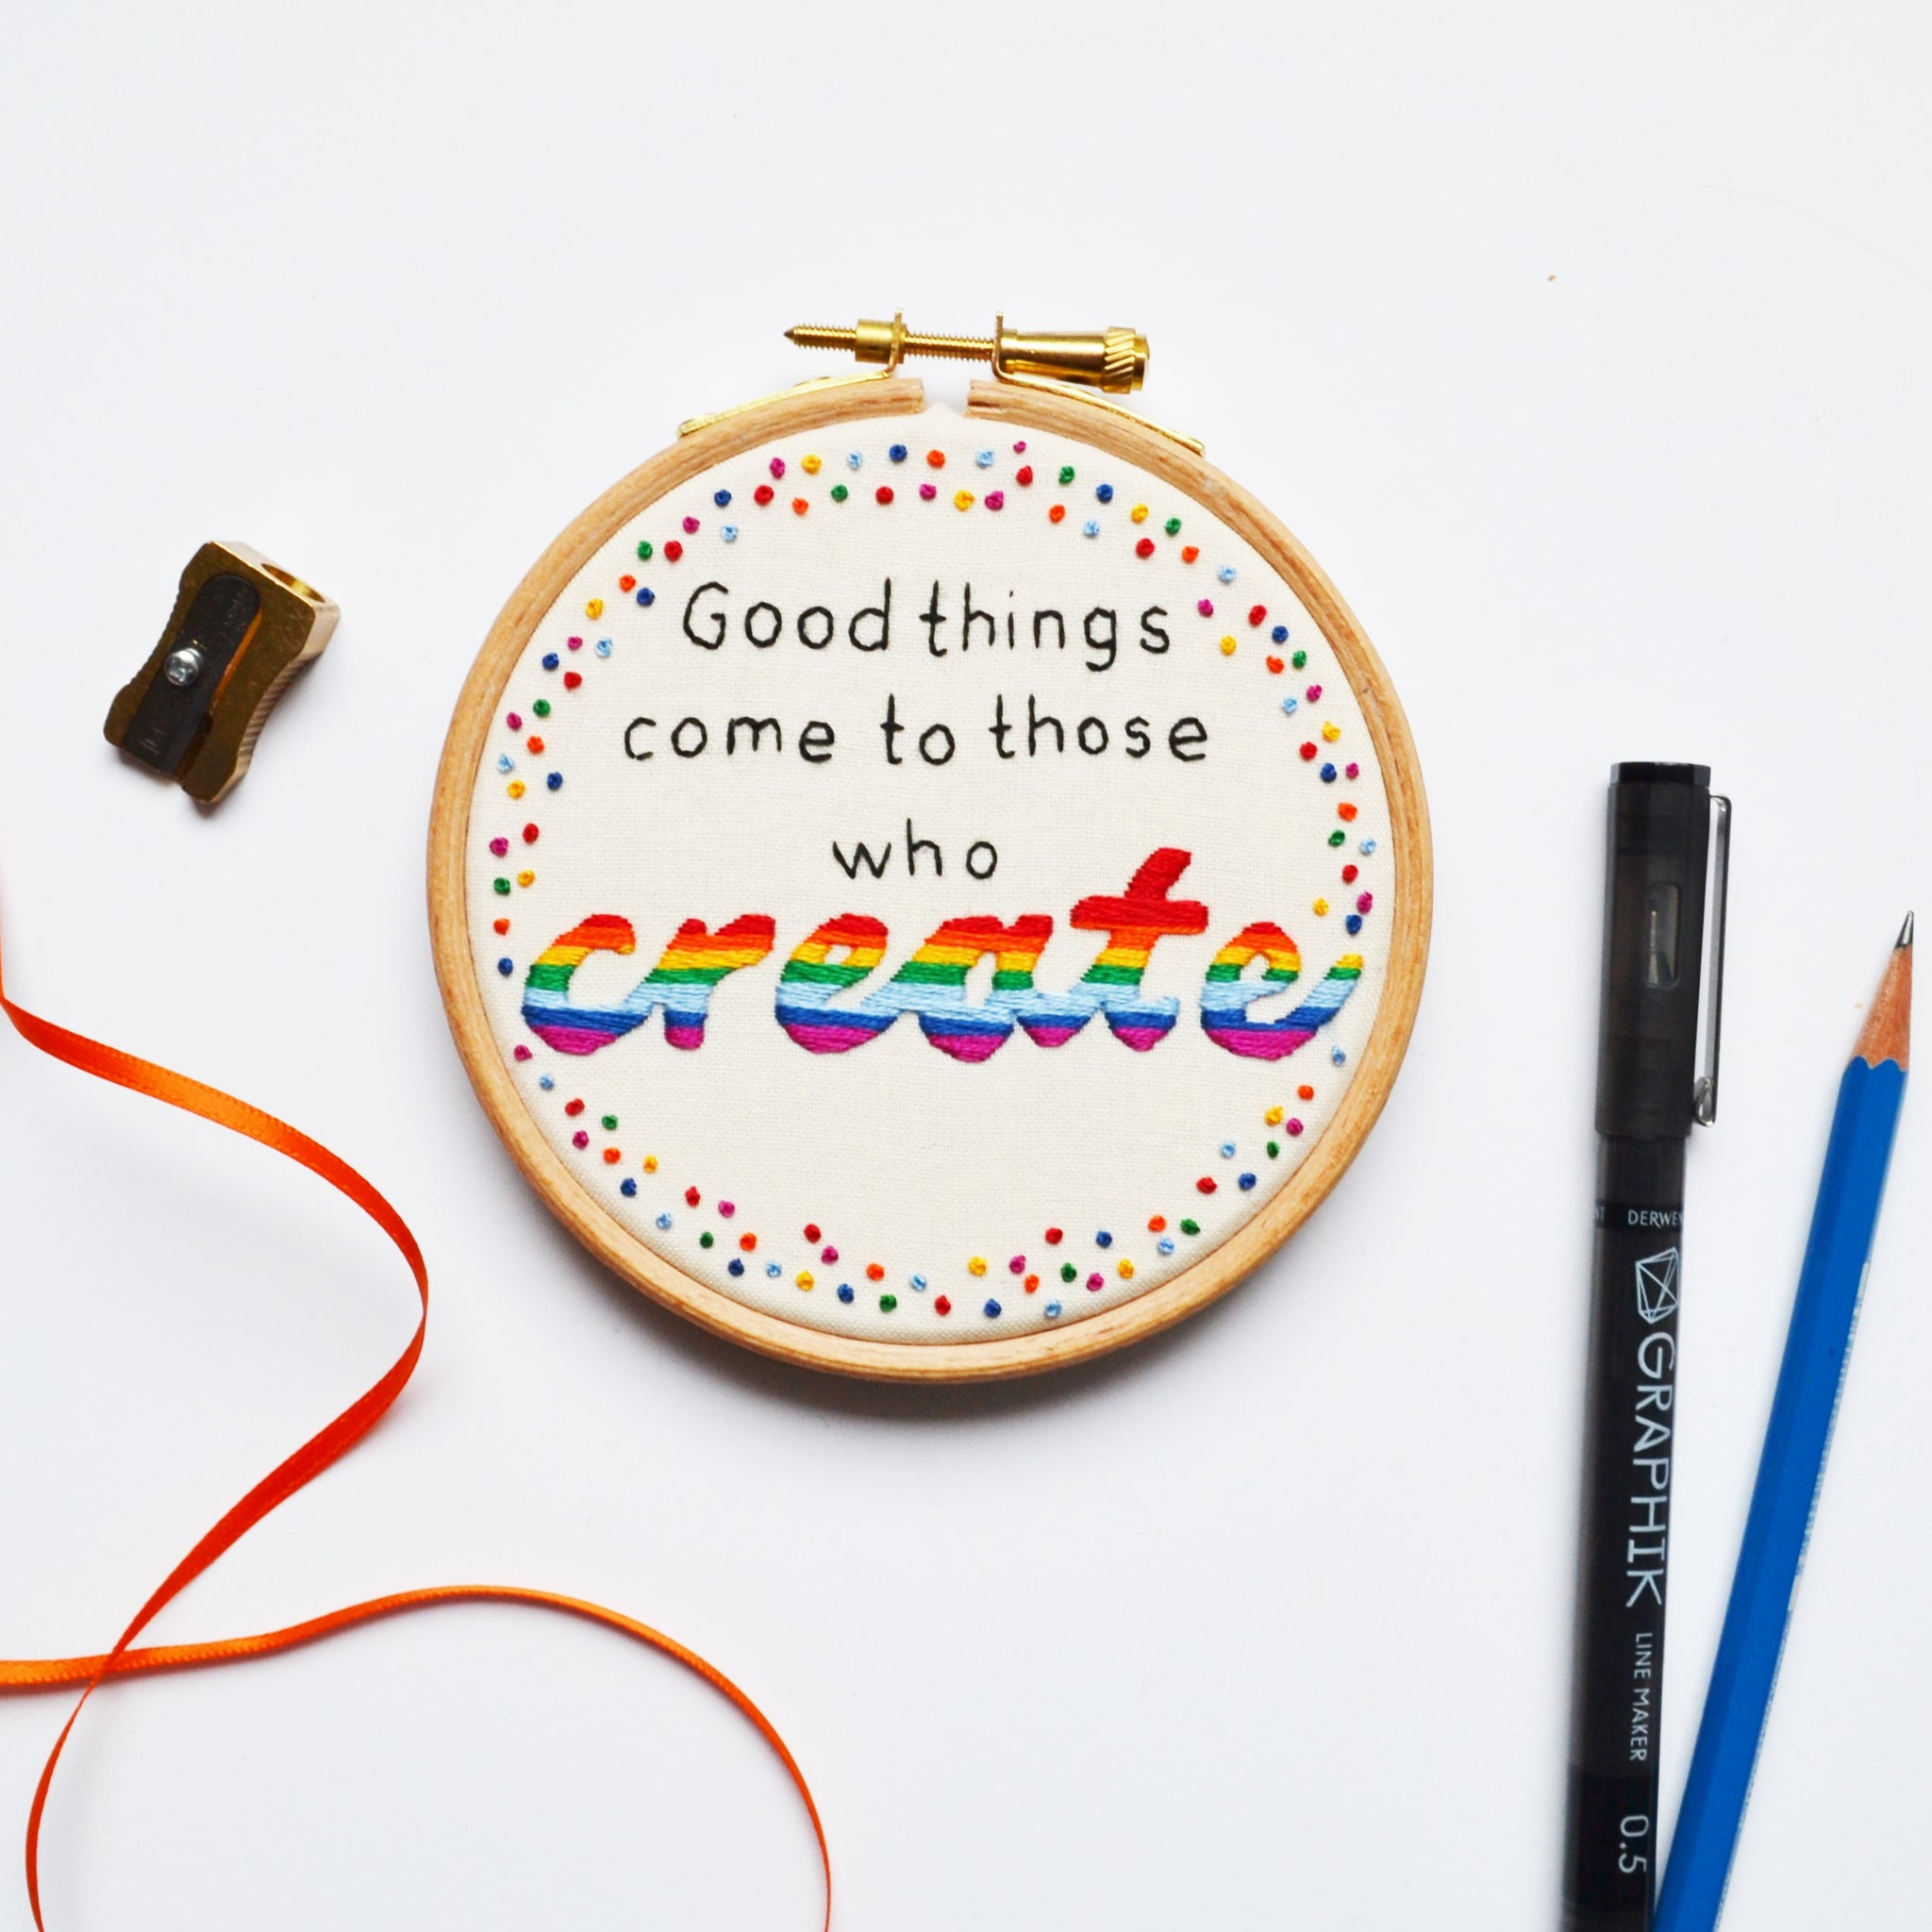 Hand Embroidery Hoop Art 'Good Things Come To Those Who Create'